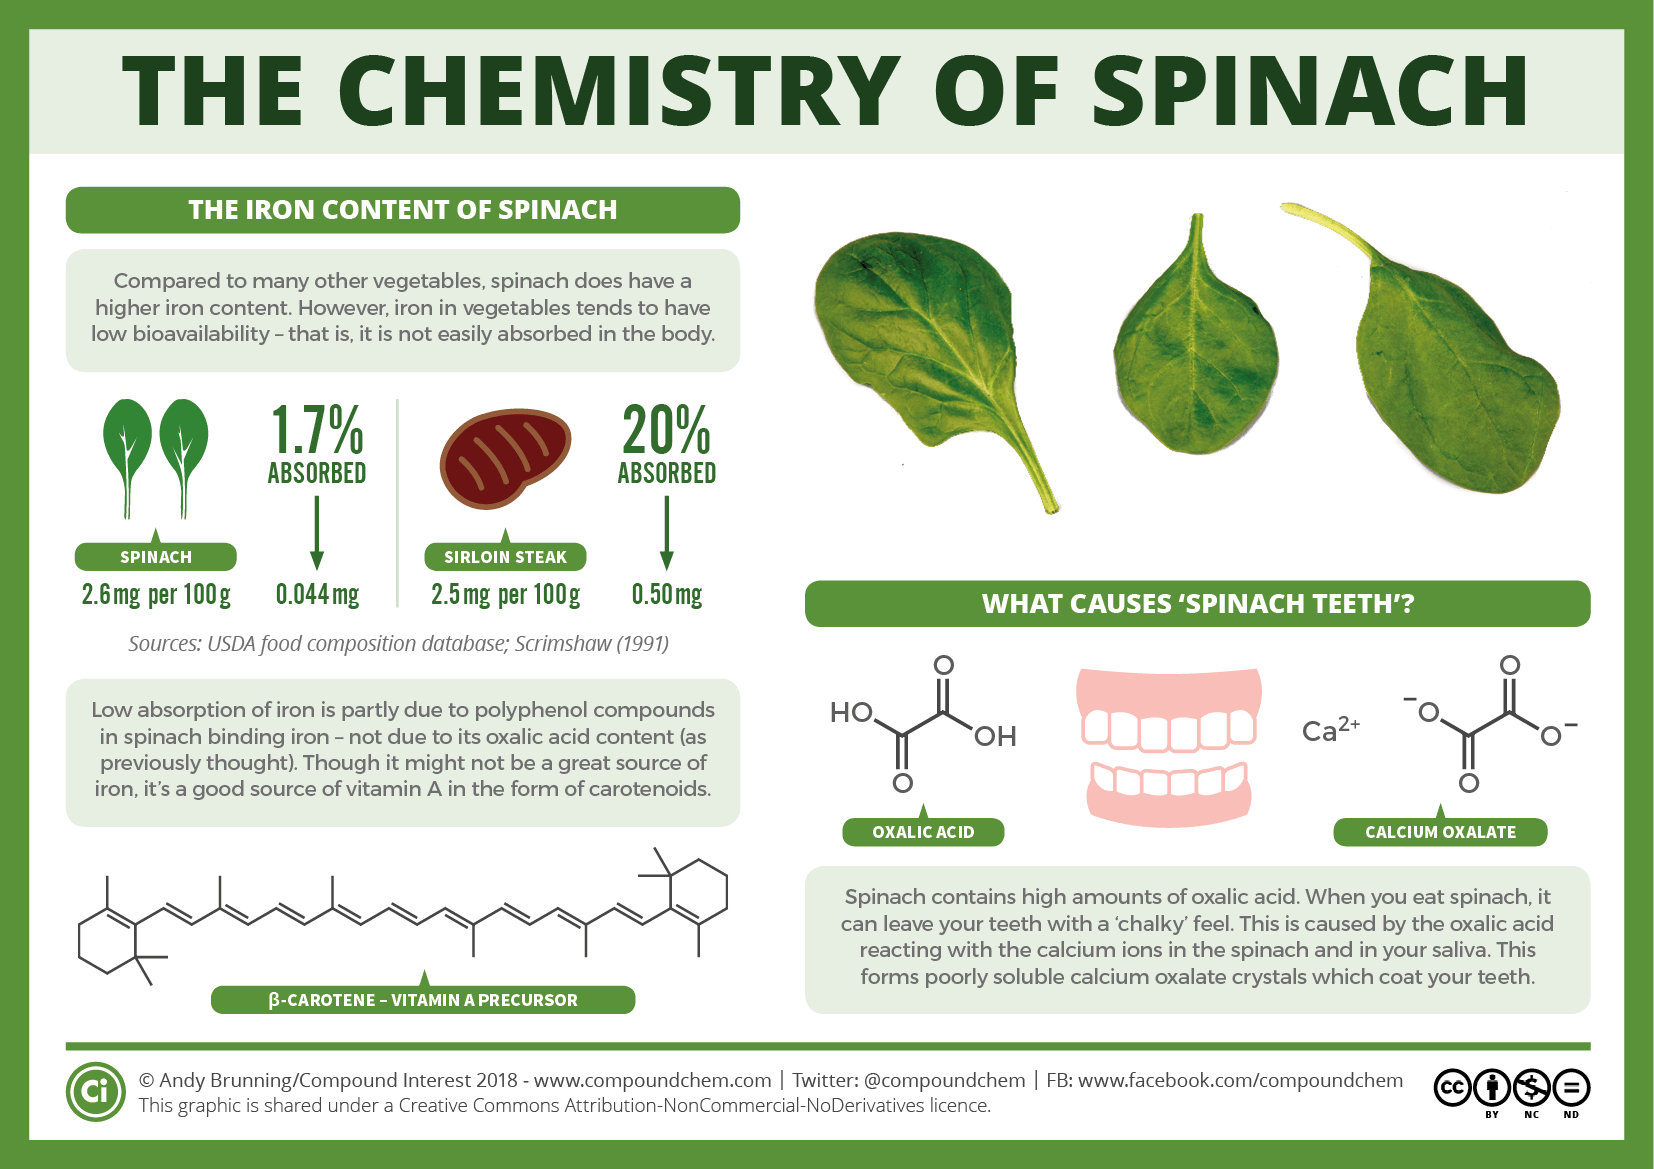 The chemistry of spinach